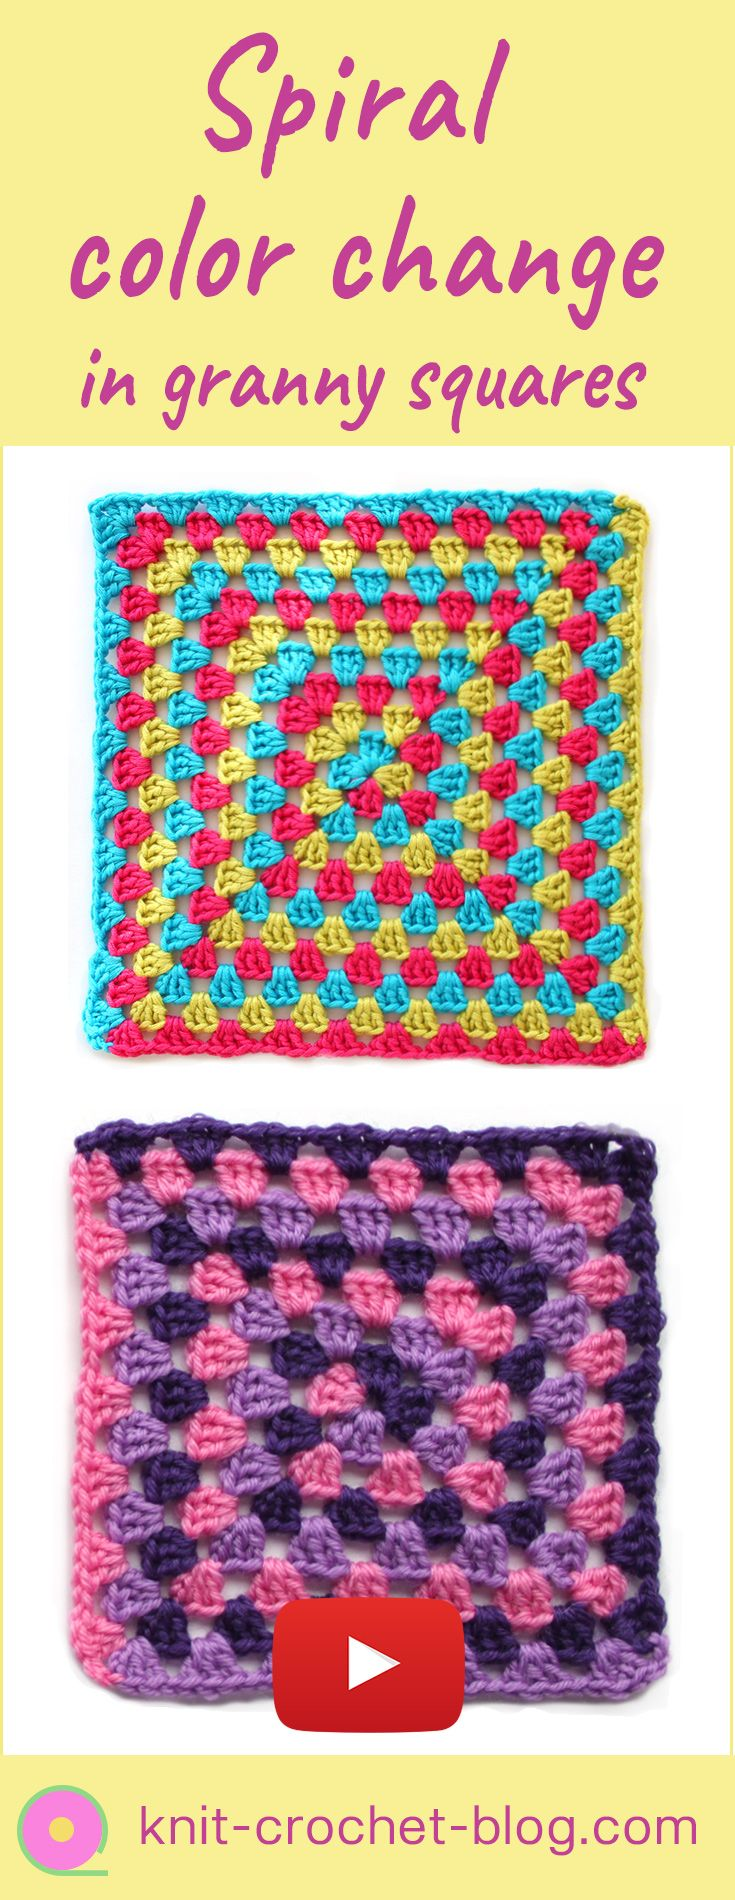 13330 best patterns for crochet community board images on granny square with spiral colour change crochet tutorial step by step instructions crochet bankloansurffo Choice Image